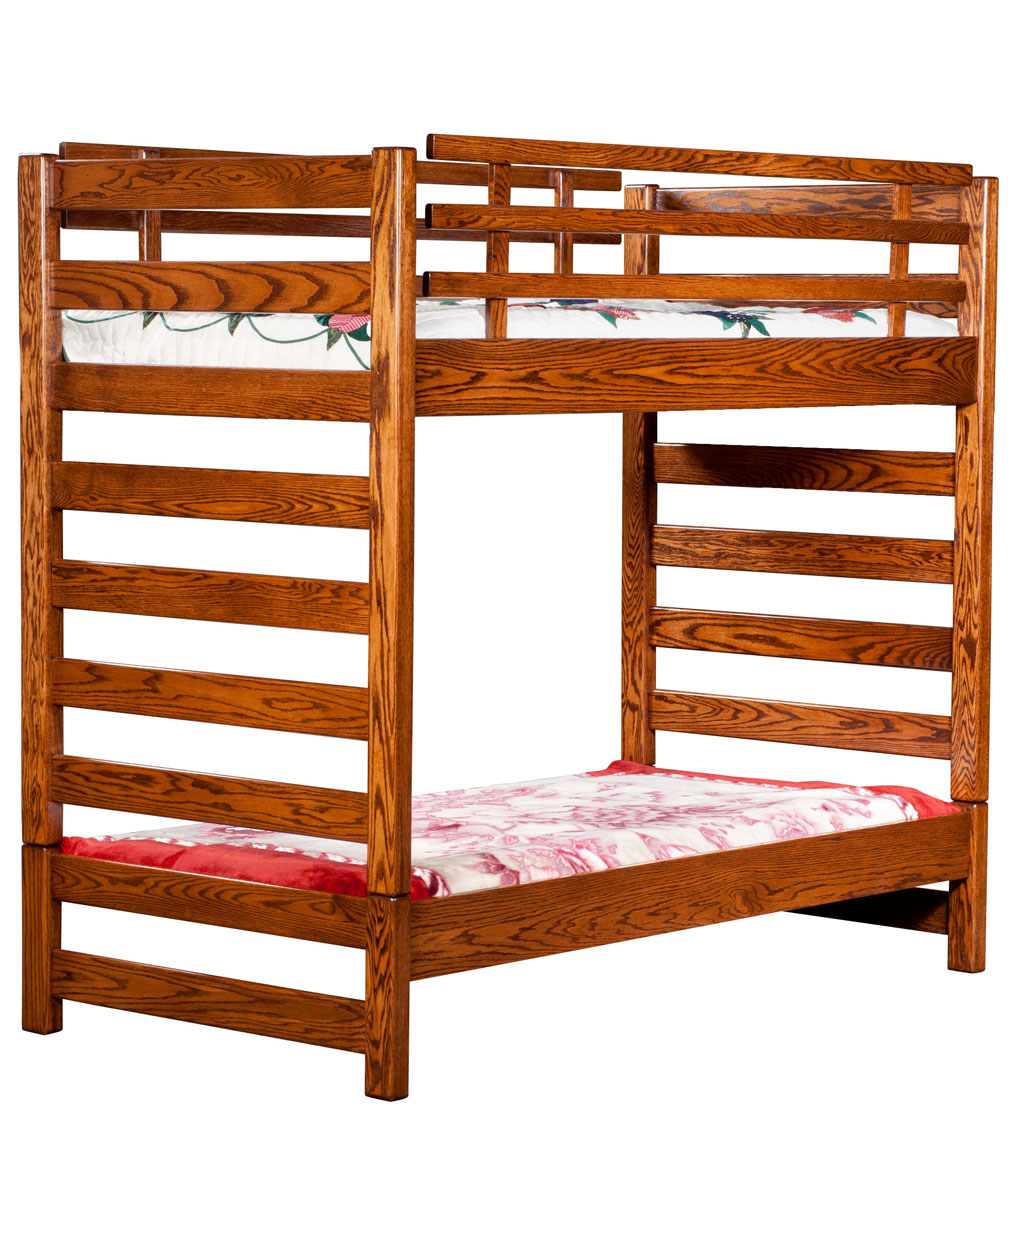 bunk bed ladders 28 images maxtrix low panel bunk bed  : IT 019 from americanhomesforsale.us size 1020 x 1240 jpeg 239kB